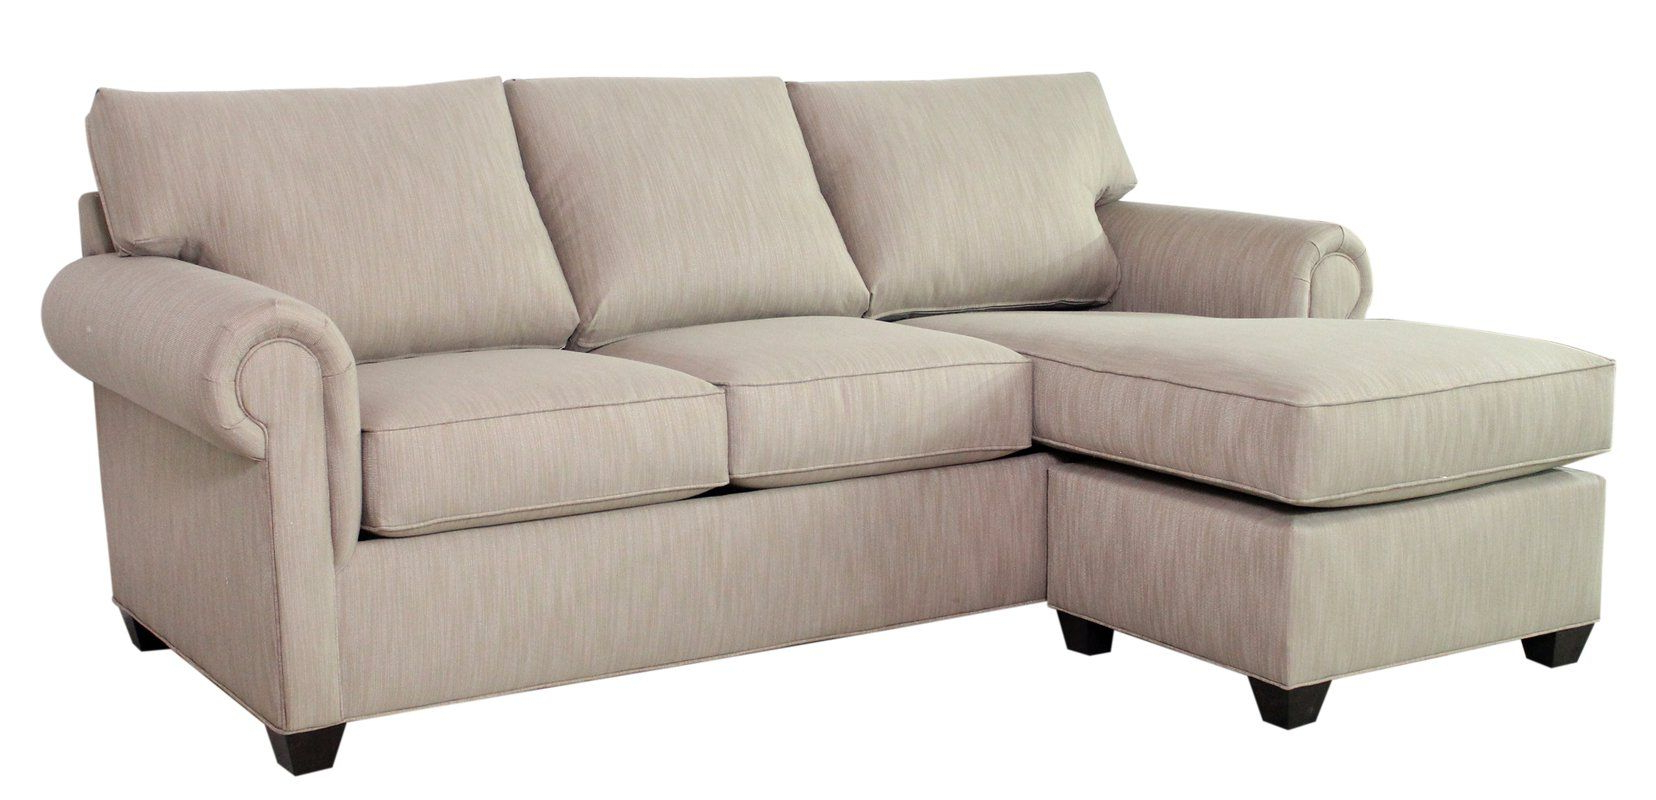 Pinterest Inside Taren Reversible Sofa/chaise Sleeper Sectionals With Storage Ottoman (View 16 of 20)